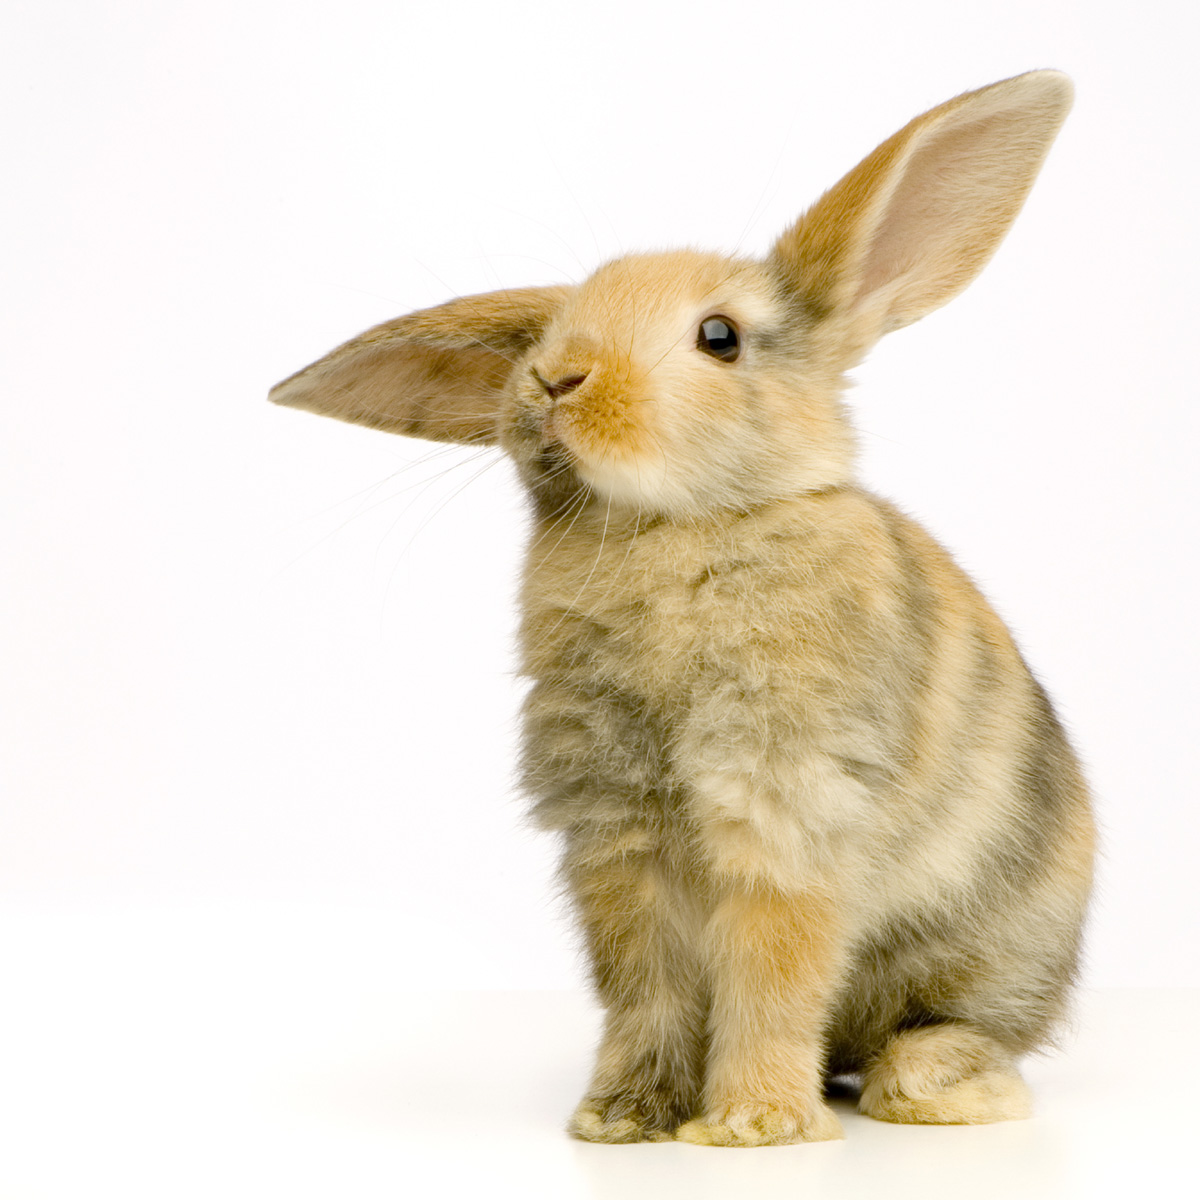 Cute rabbit 20402